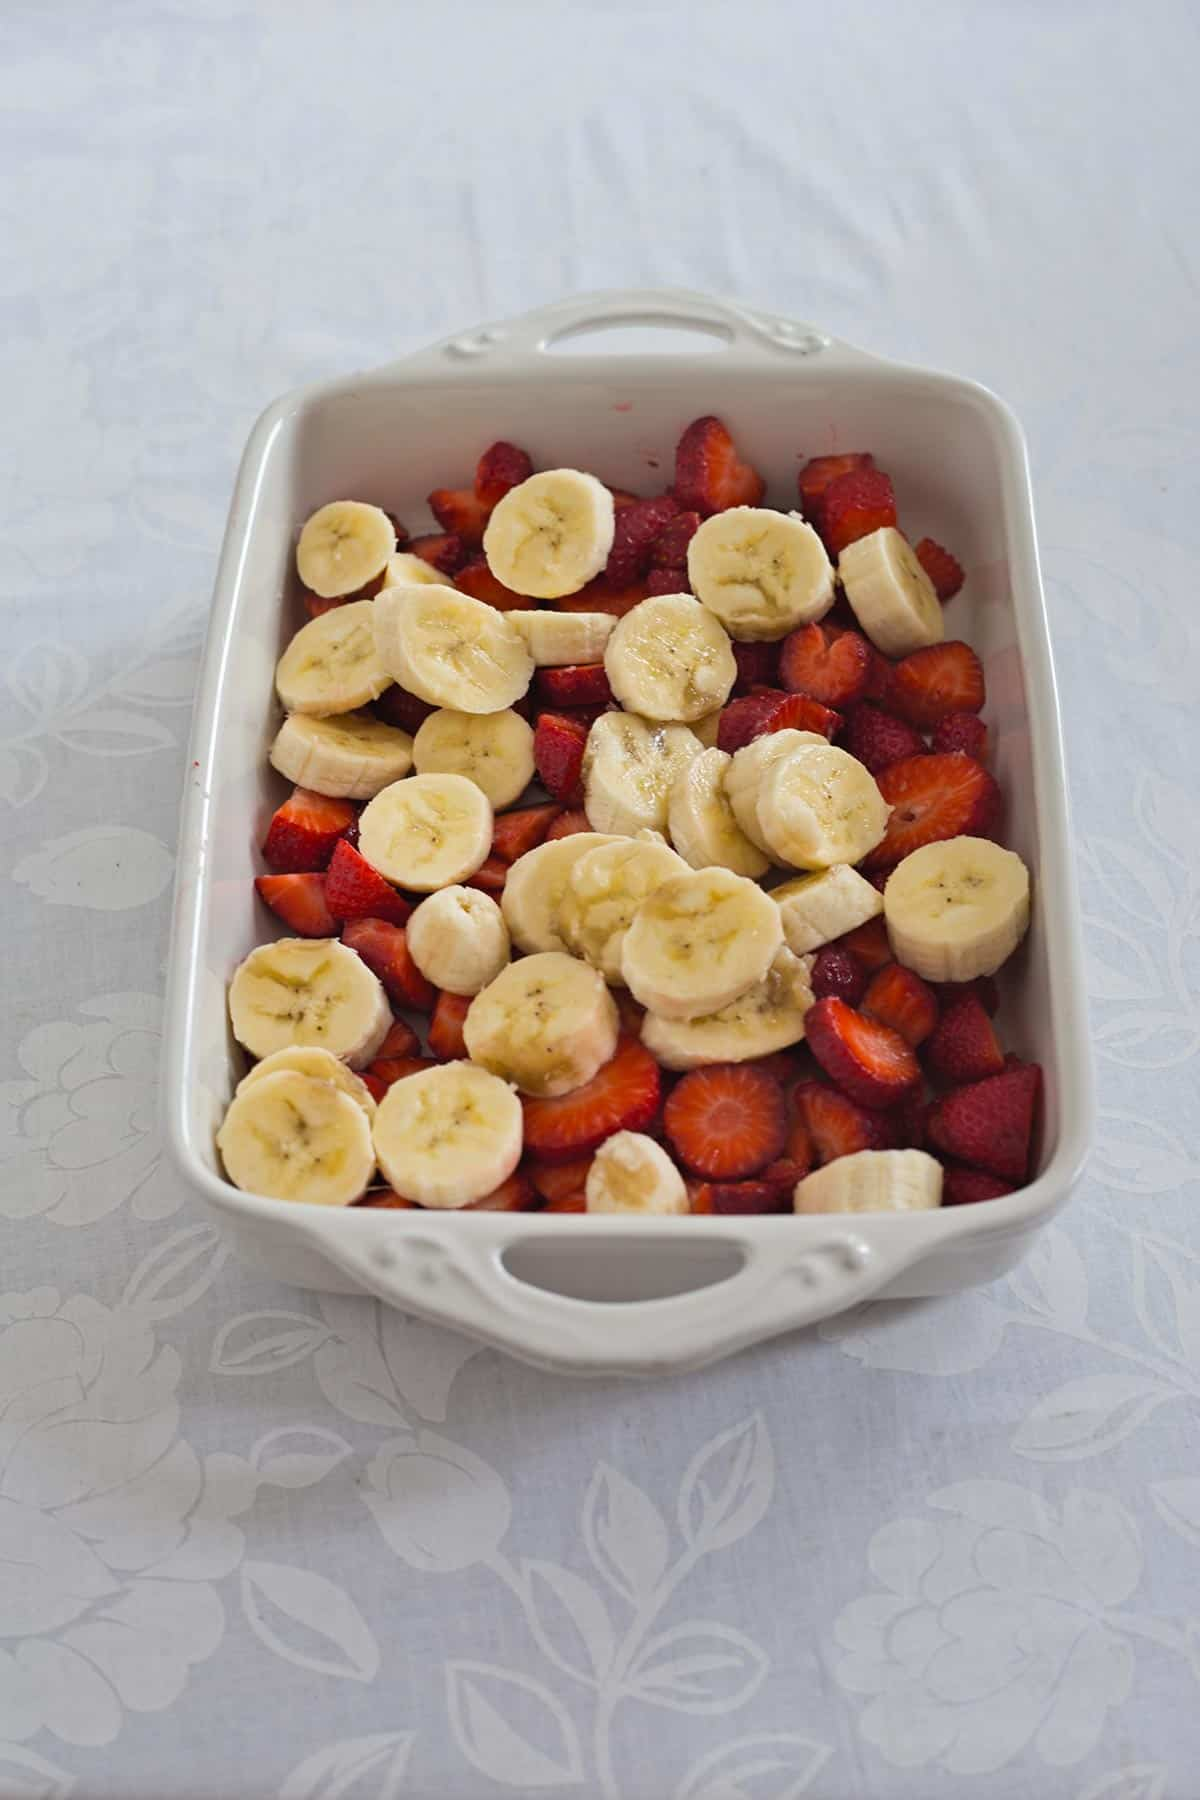 Strawberries and bananas in a white rectangular baking dish to make strawberry dump cake with bananas